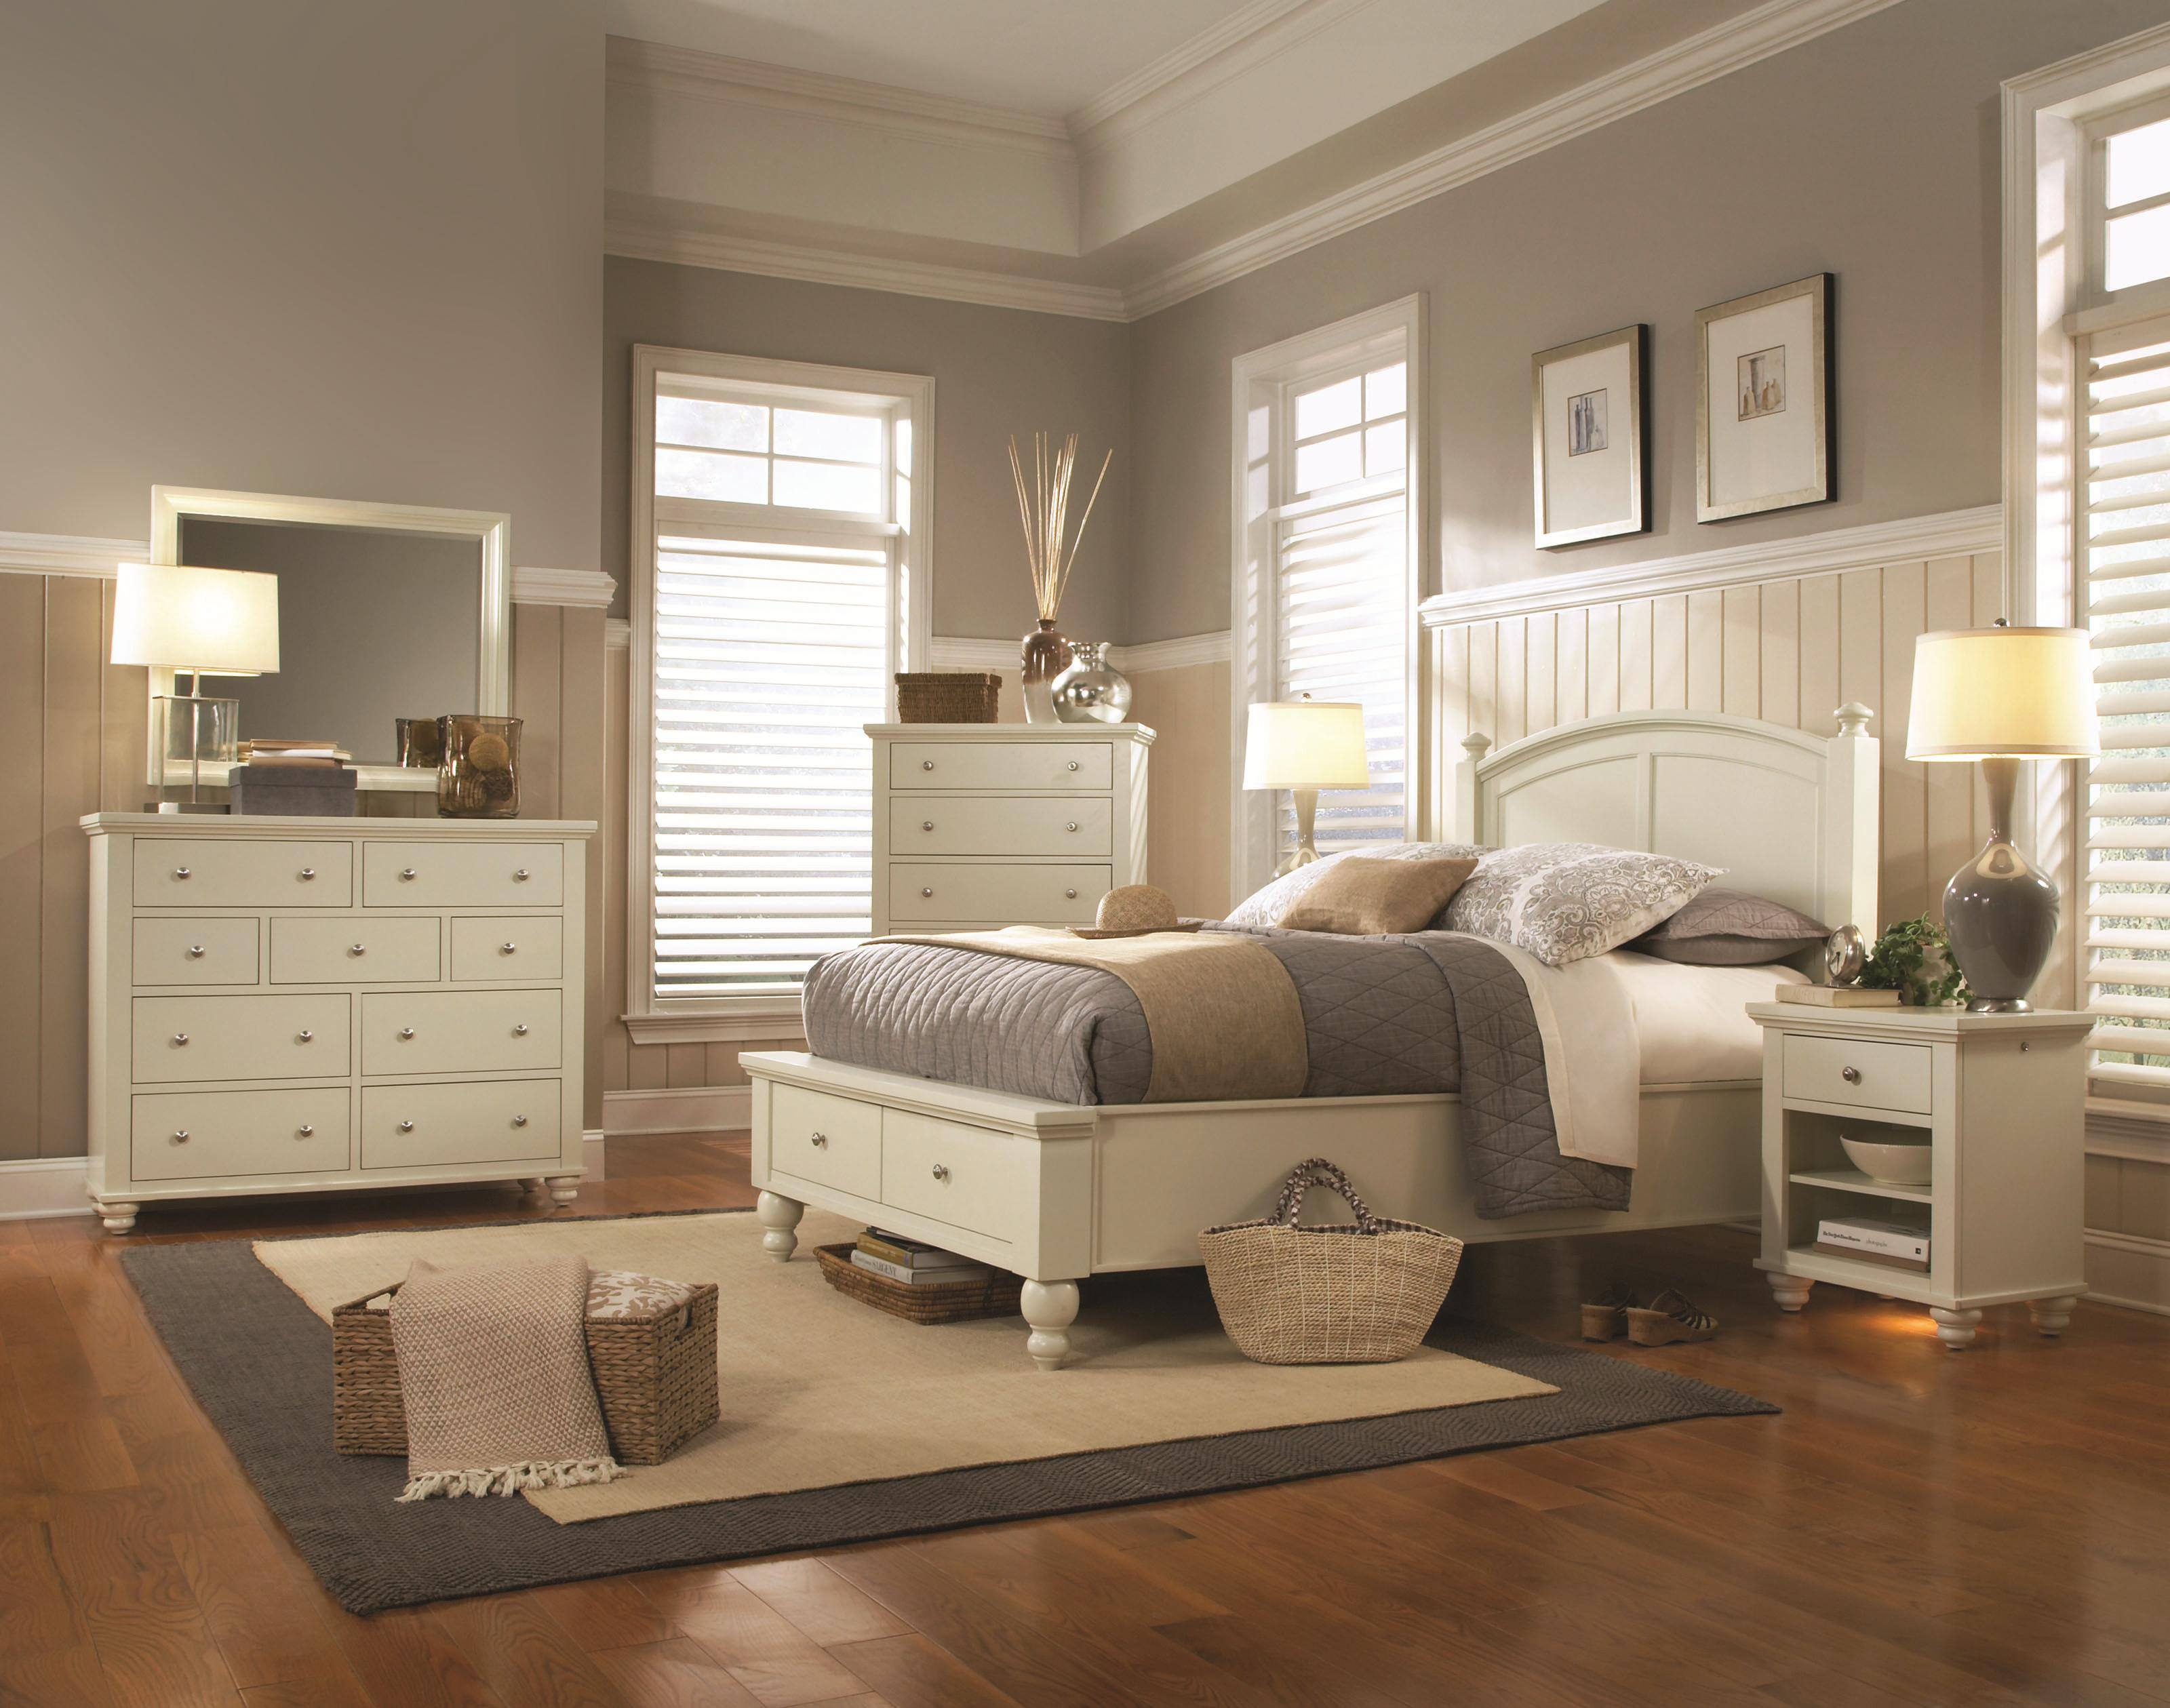 Aspenhome Cambridge Icb 515 507d 506 Egg Full Size Bed With Rounded Panel Headboard Low